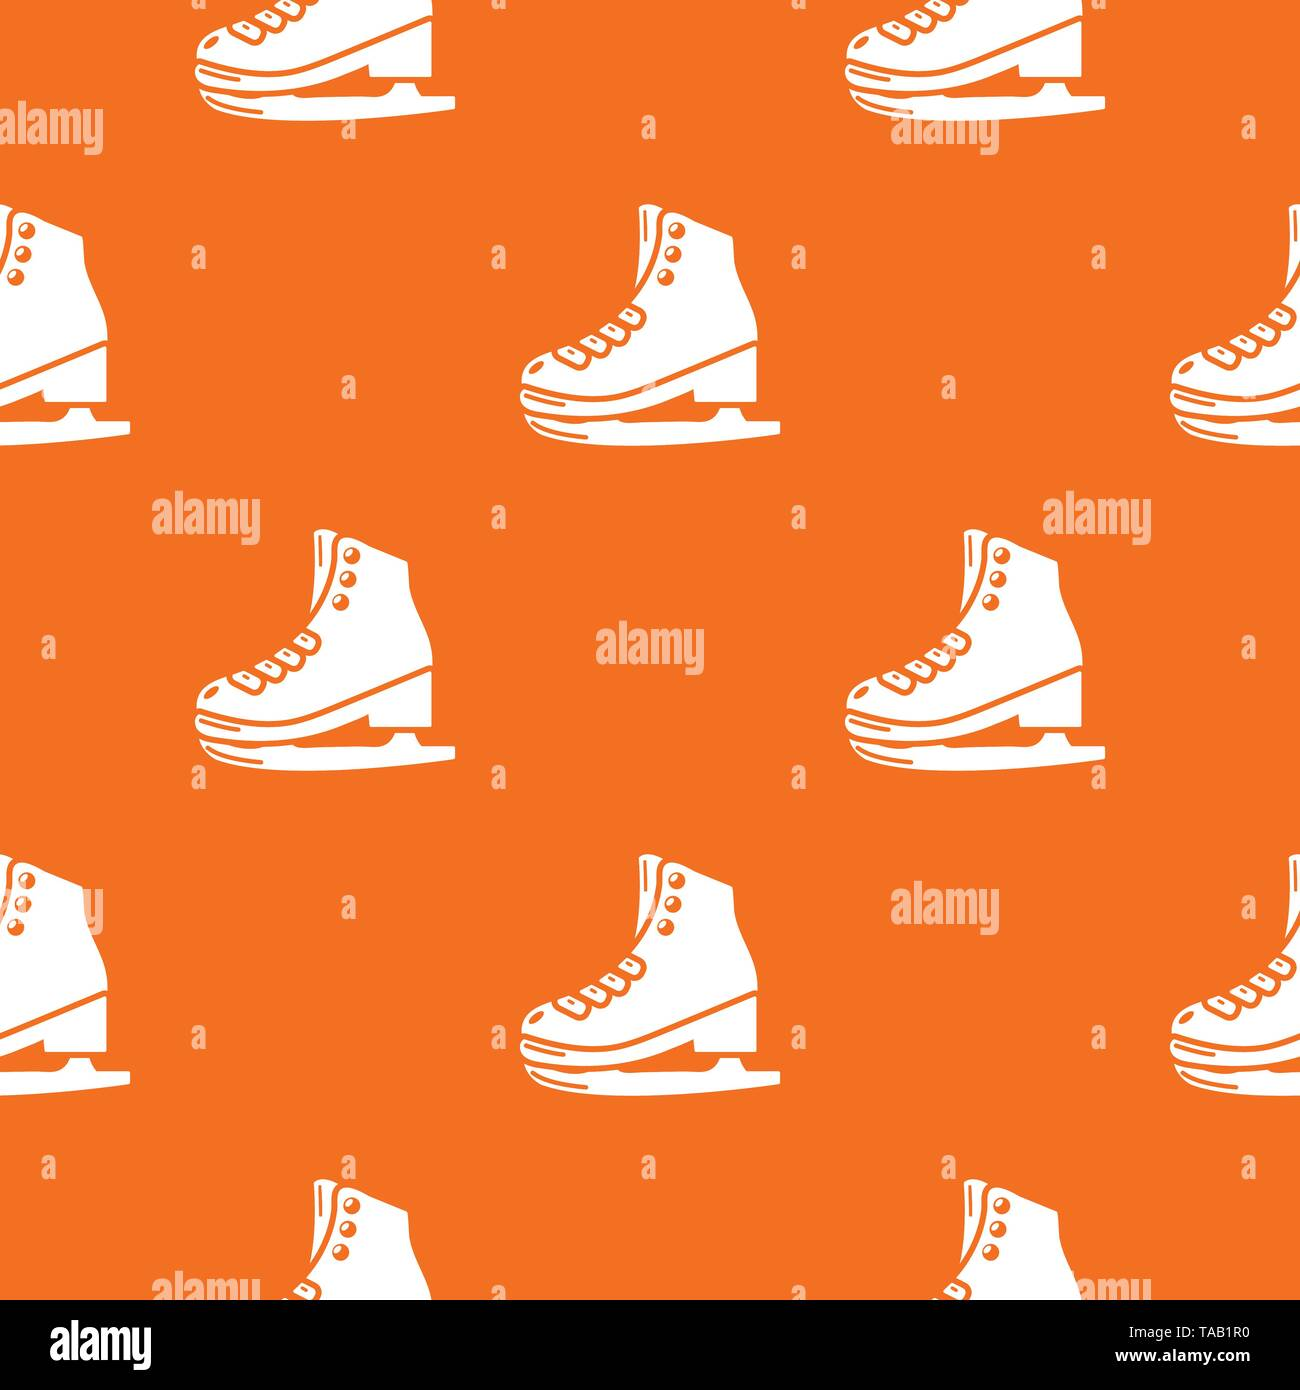 Skates pattern vector orange - Stock Image